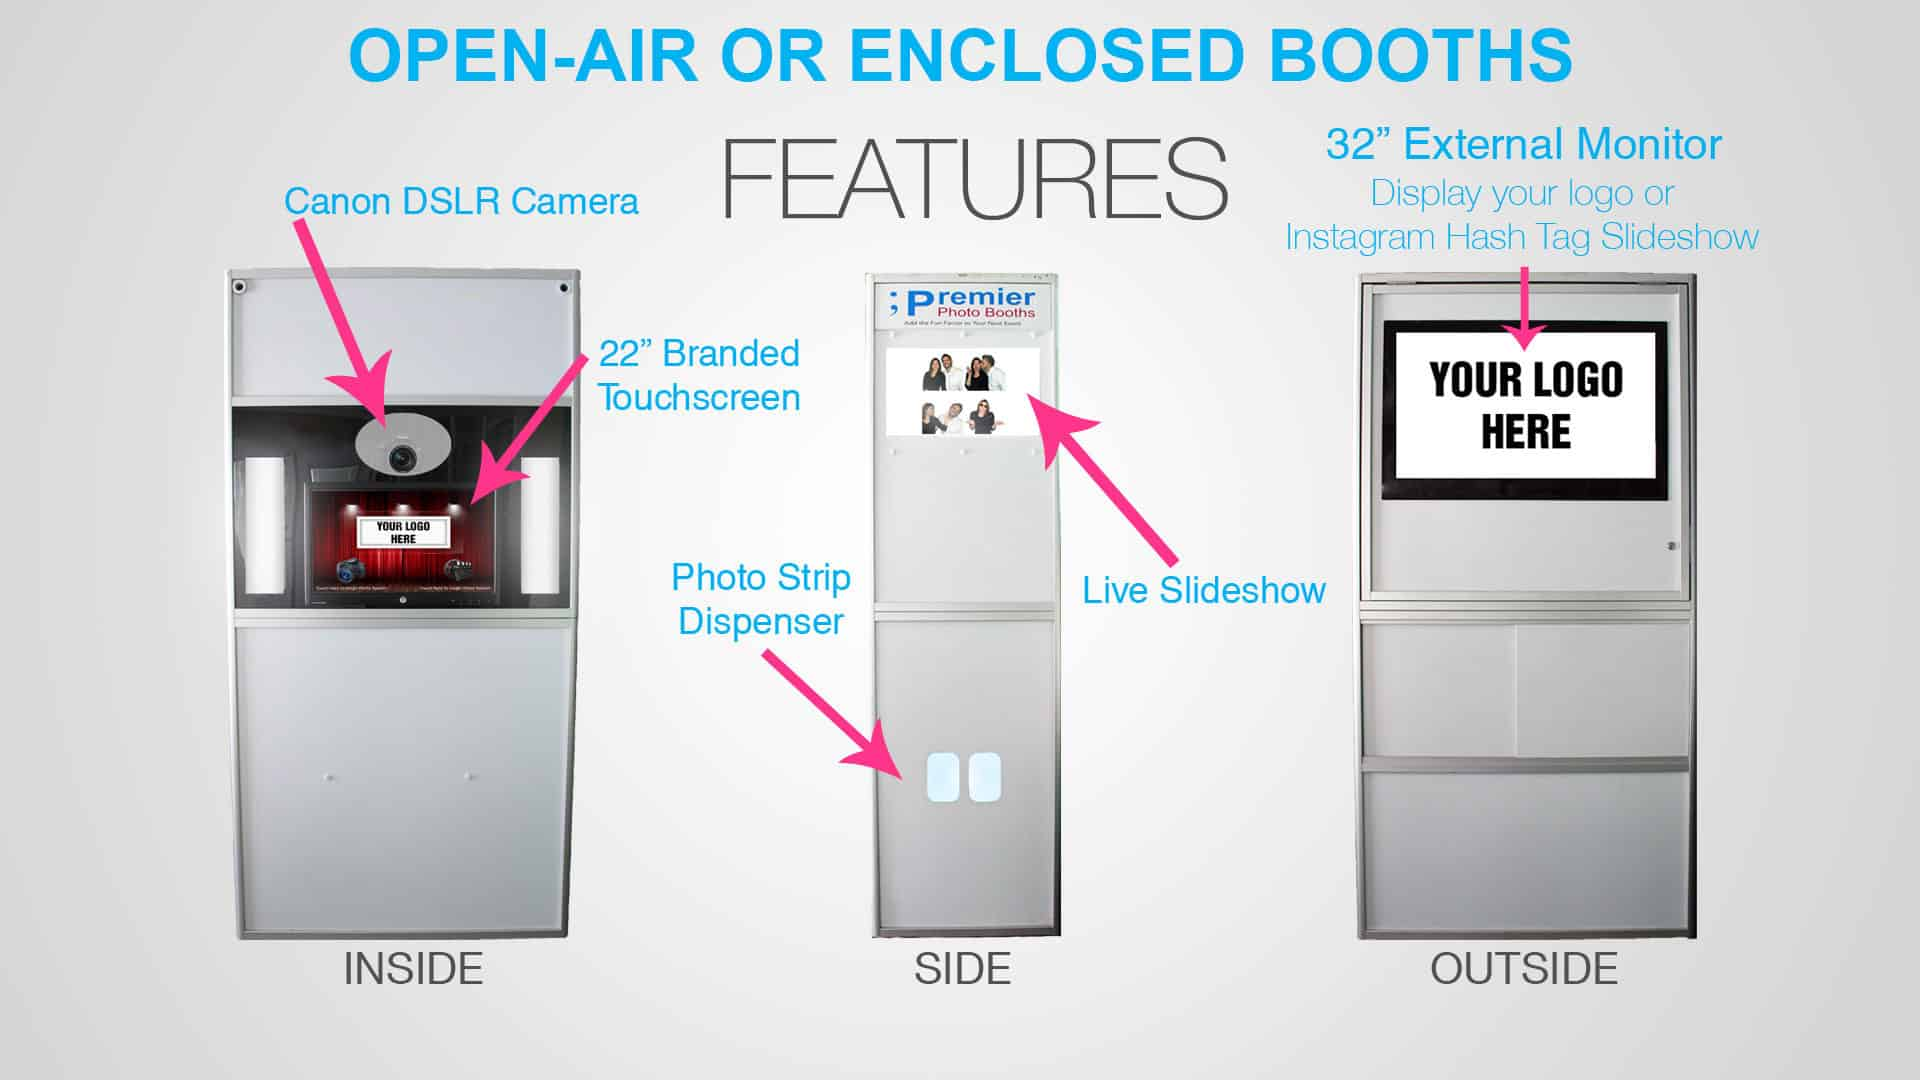 Open-Air or Enclosed Photo Booths